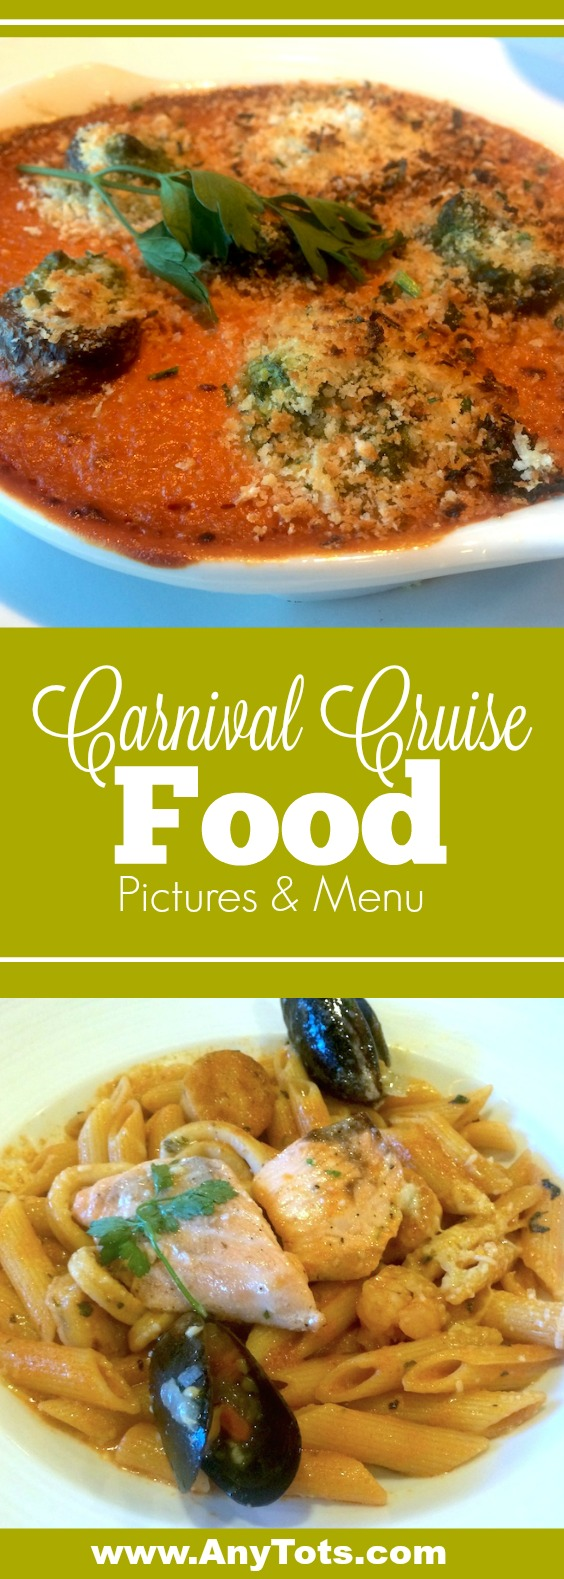 Carnival Cruise Menu: Food On Carnival Imagination 5 Day